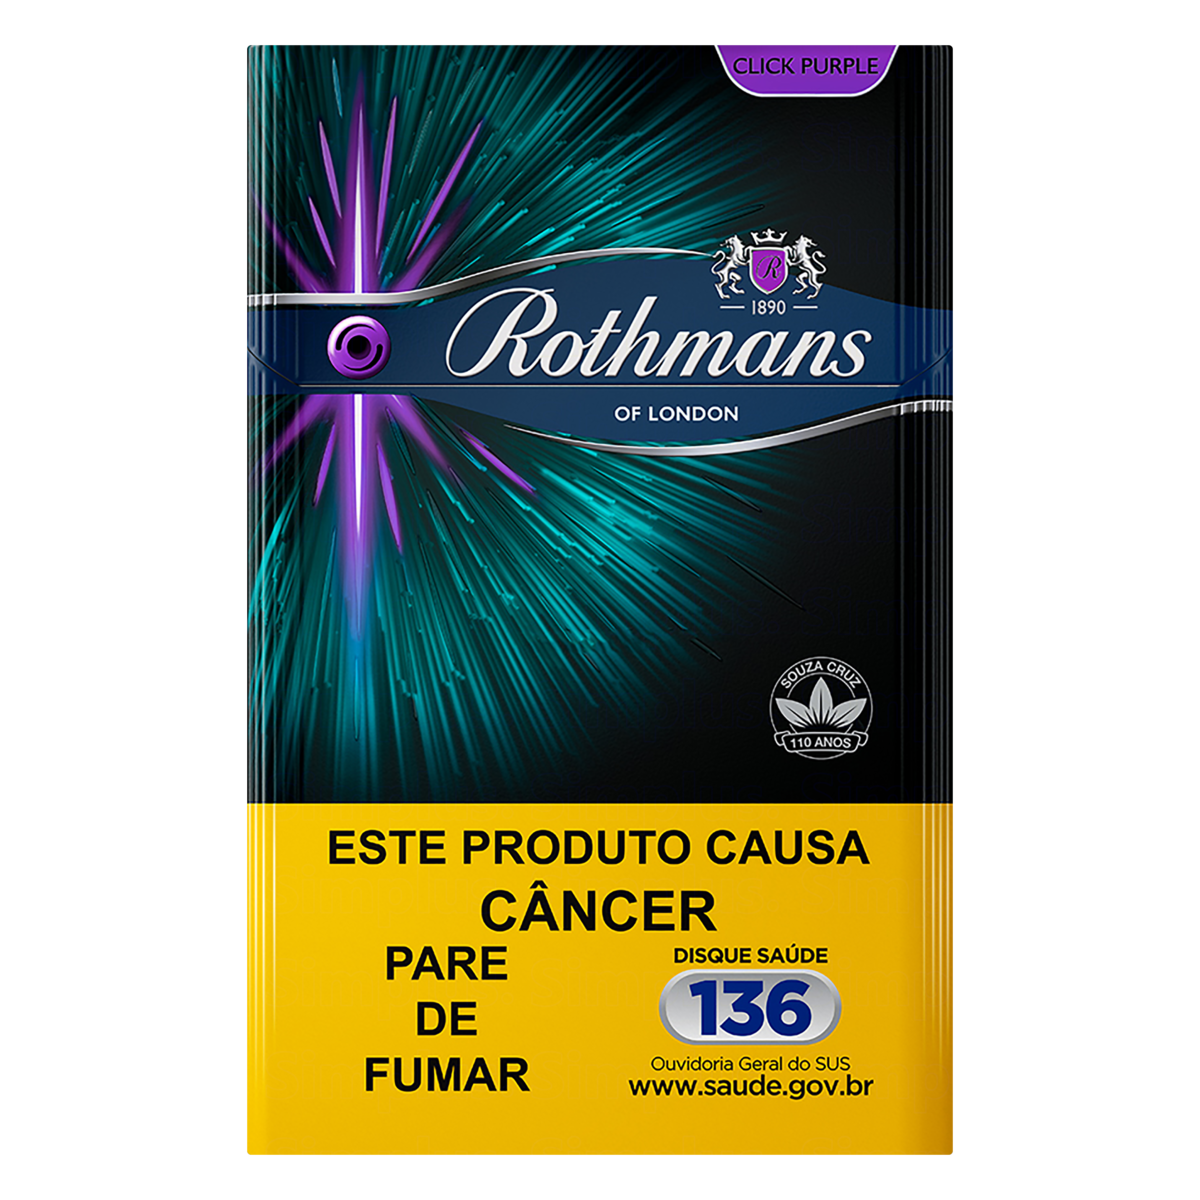 0000078937918 - CIGARRO CLICK PURPLE ROTHMANS BOX